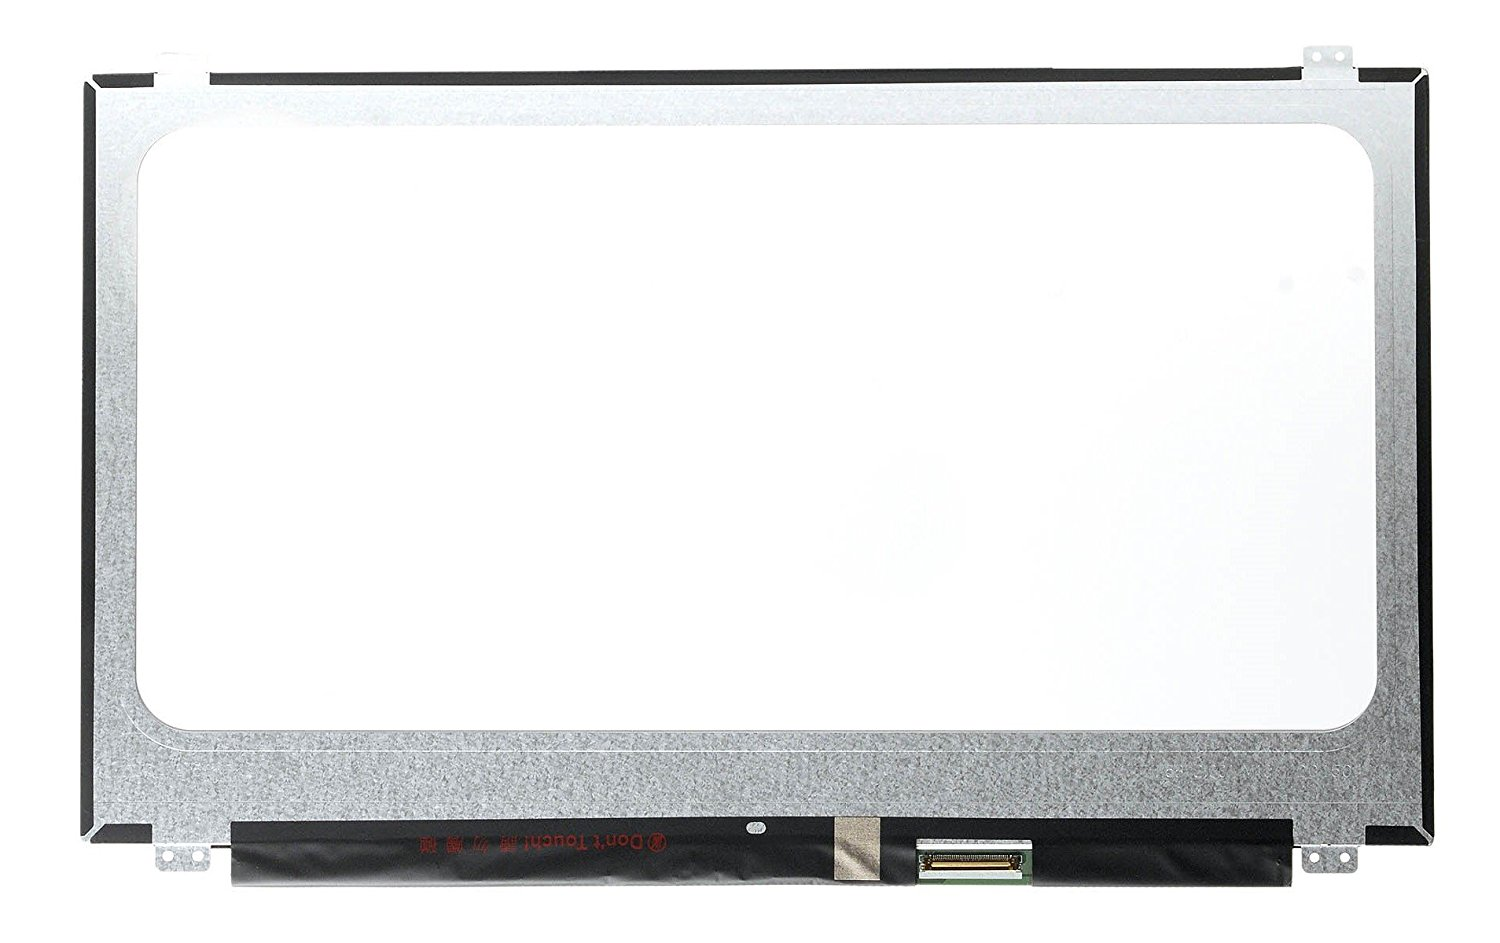 For Dell Inspiron 3558 15.6 LED LCD Touch Screen Display WXGA LTN156AR36-001 free shipping n156bgn e41 nt156whm t00 40pins edp lcd screen panel touch displayfor dell inspiron 15 5558 vostro 15 3558 jj45k